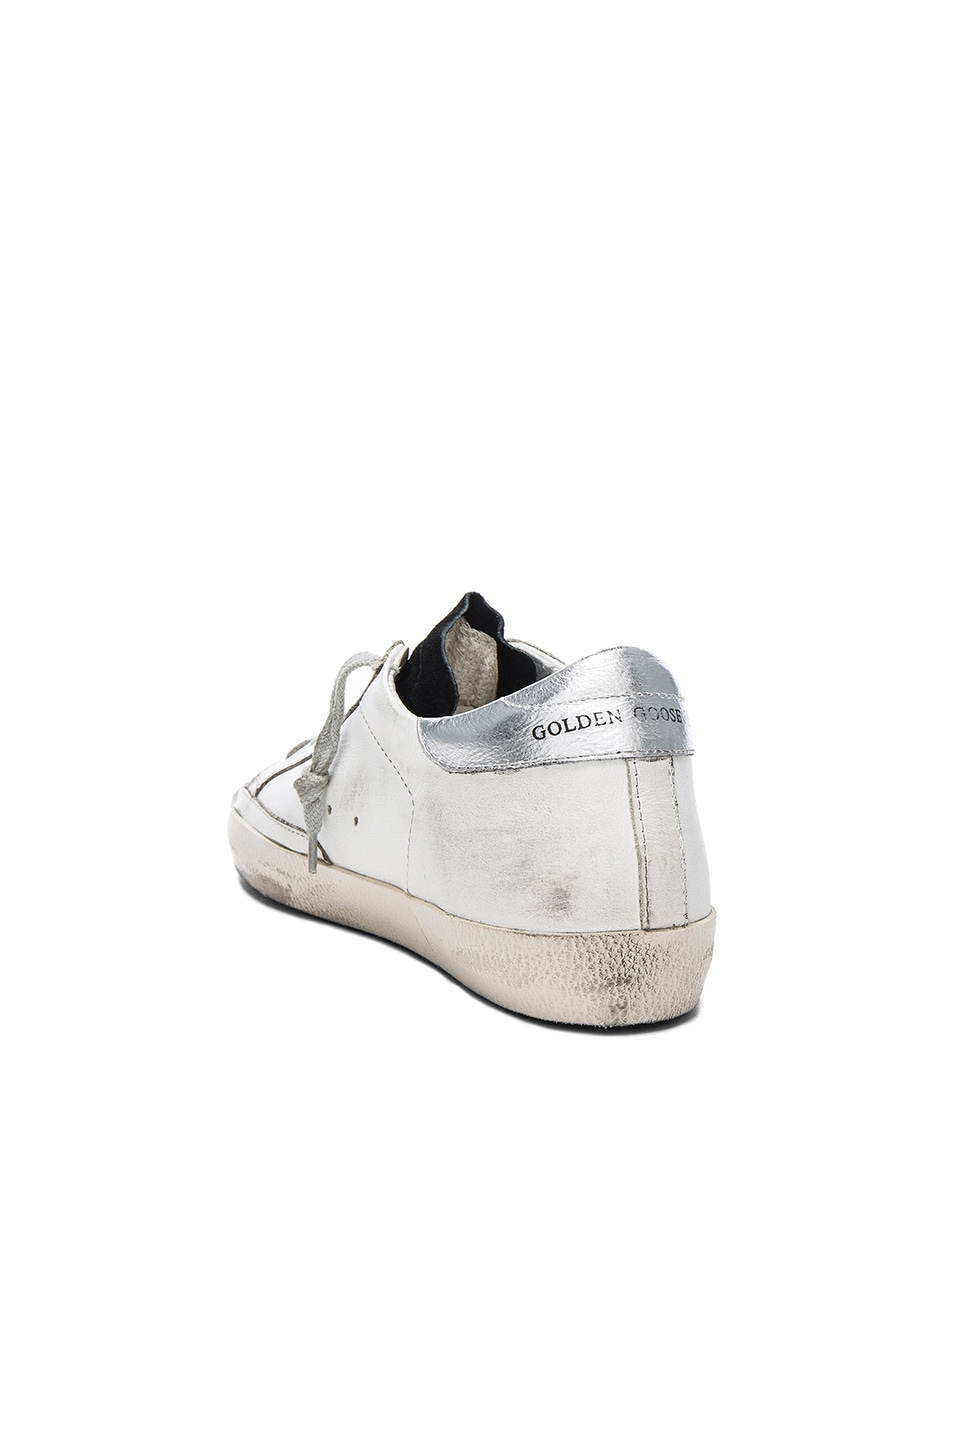 Image 3 of Golden Goose Leather Superstar Low Sneakers in White & Petroleum